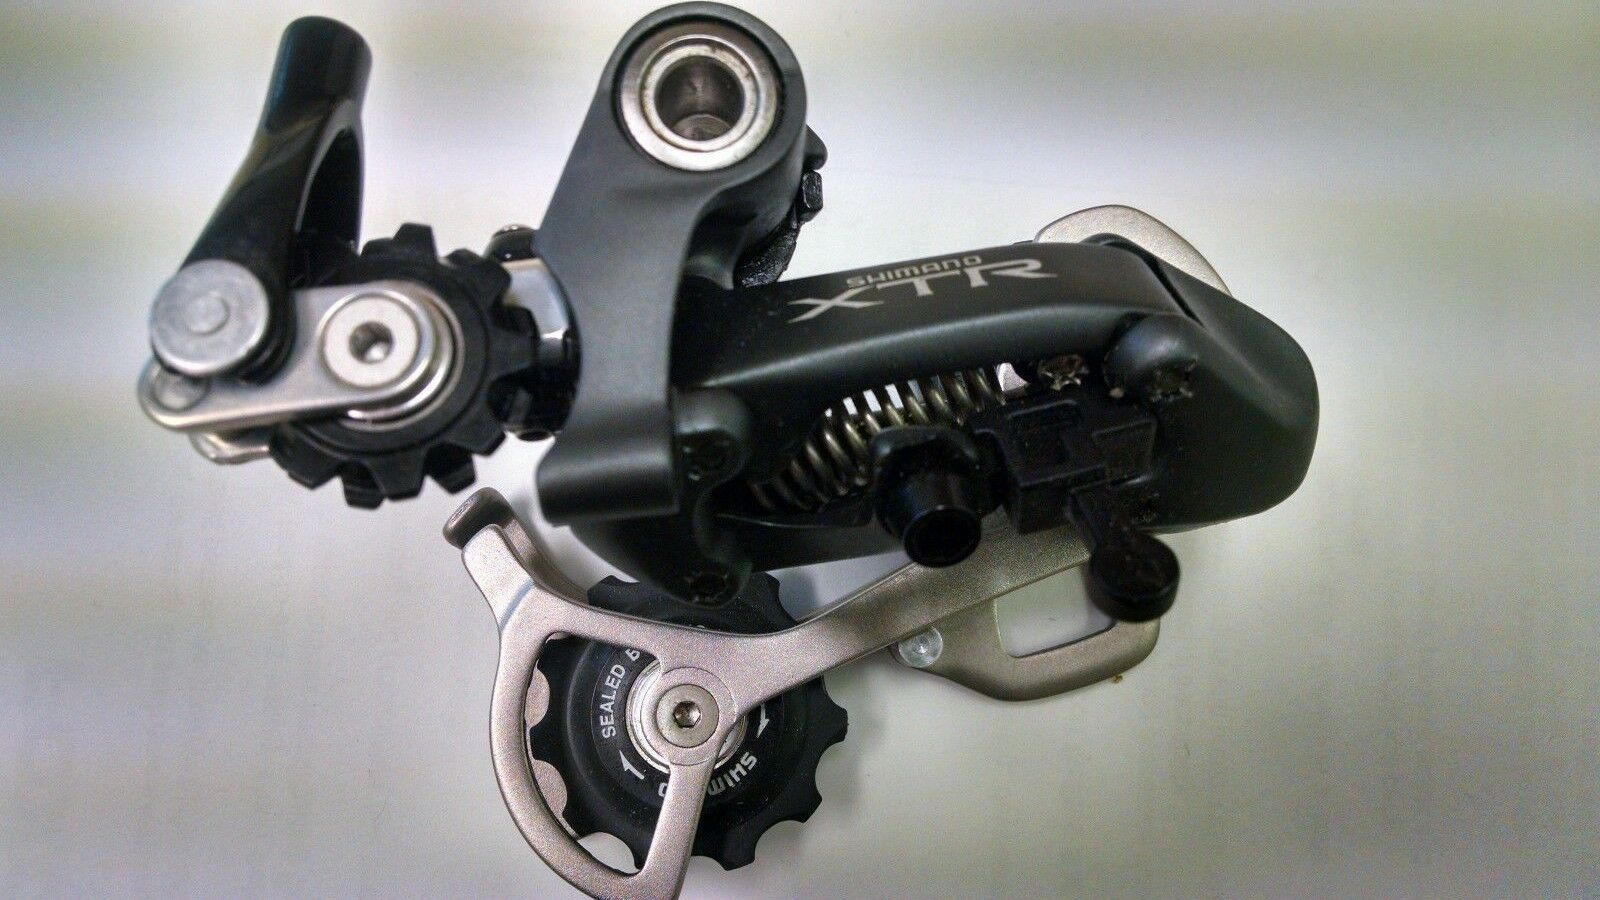 Shimano XTR M951 Rapid Rise Rear Derailleur, 8-speed 9-speed, RD-M951-GS Midcage